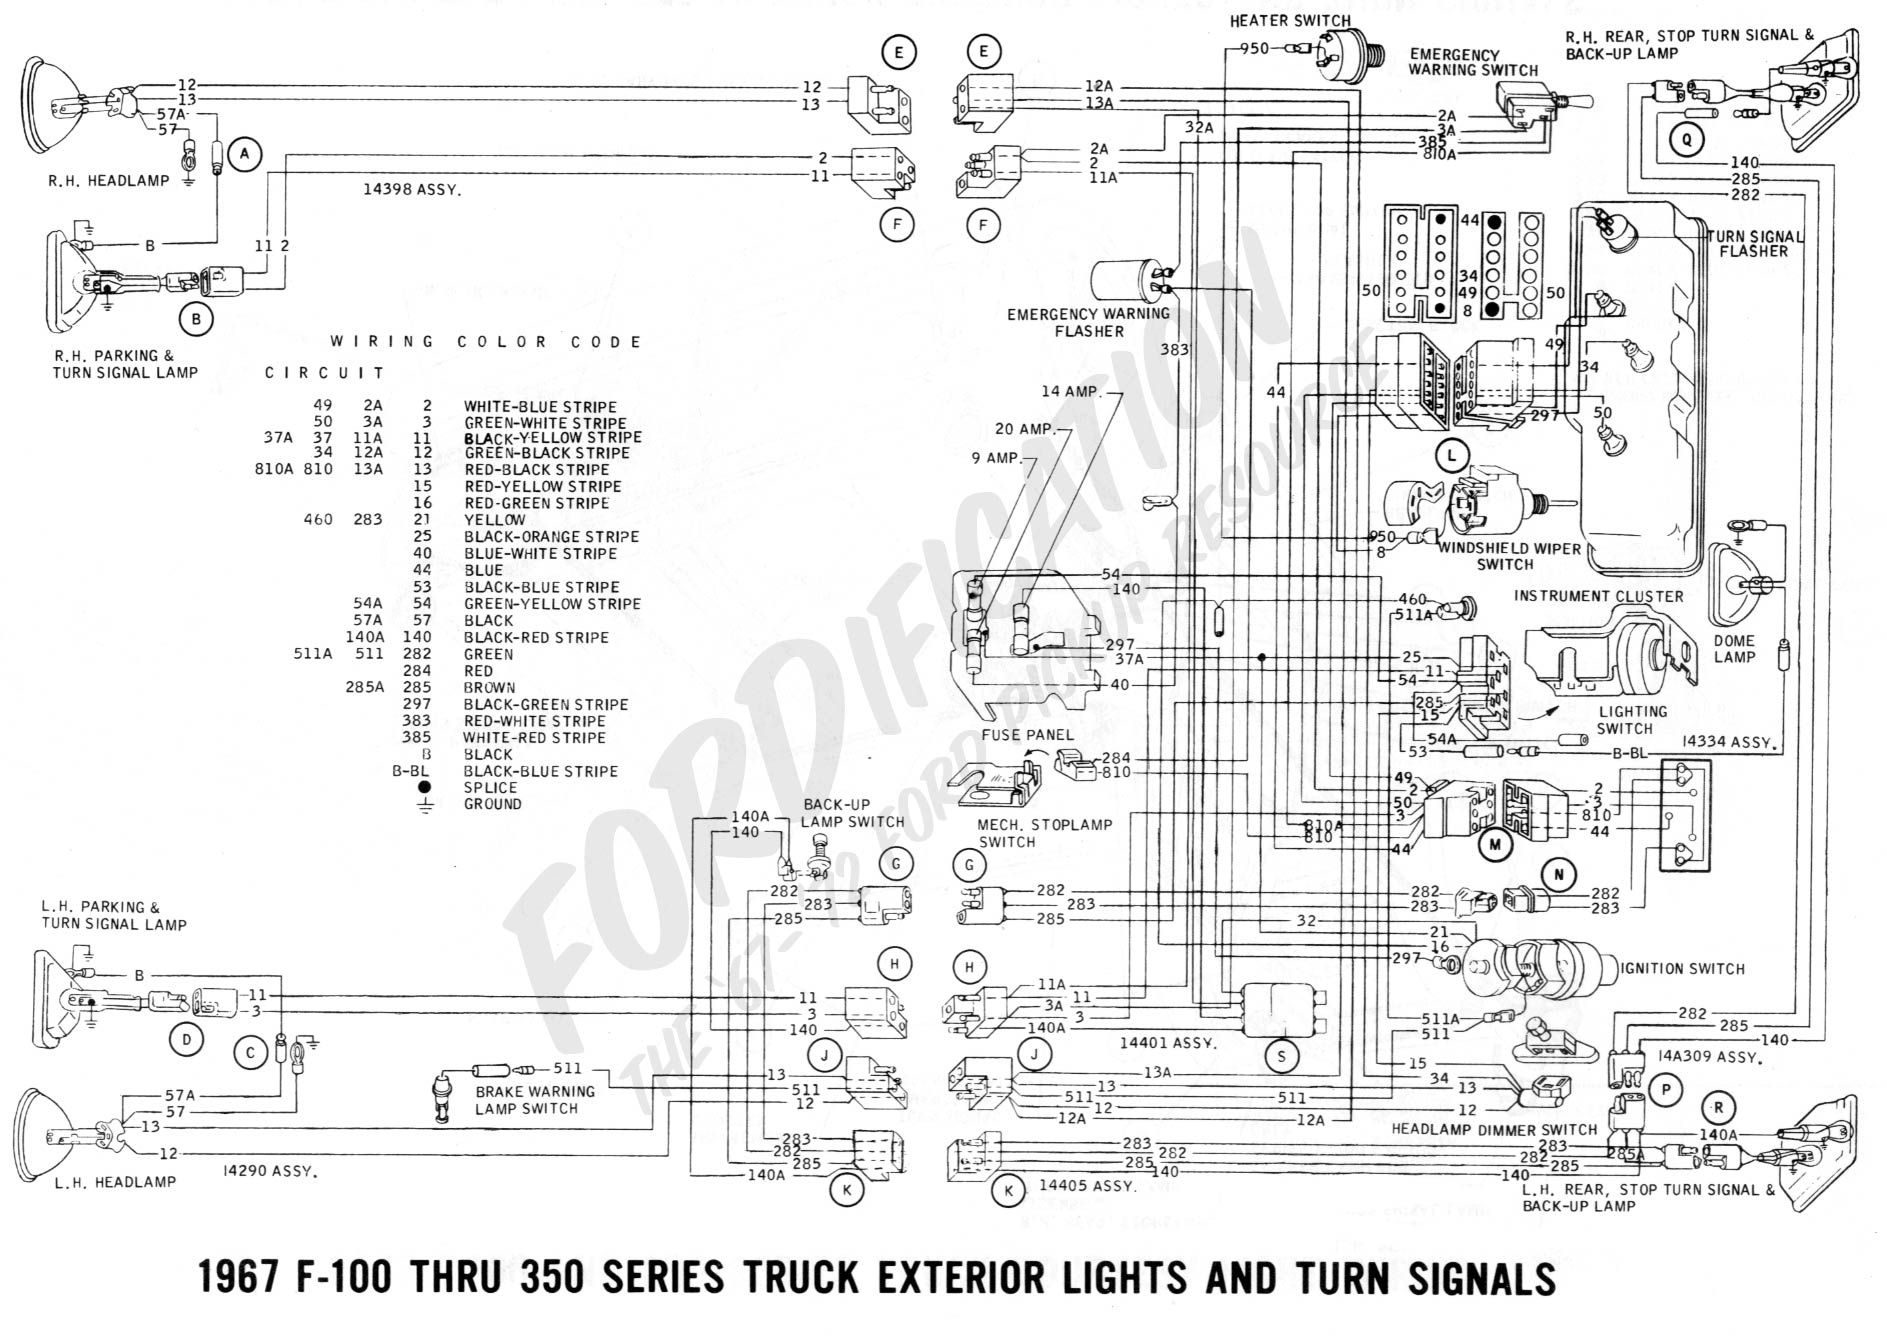 Fabulous Ford Truck Ignition Wiring Basic Electronics Wiring Diagram Wiring Cloud Domeilariaidewilluminateatxorg